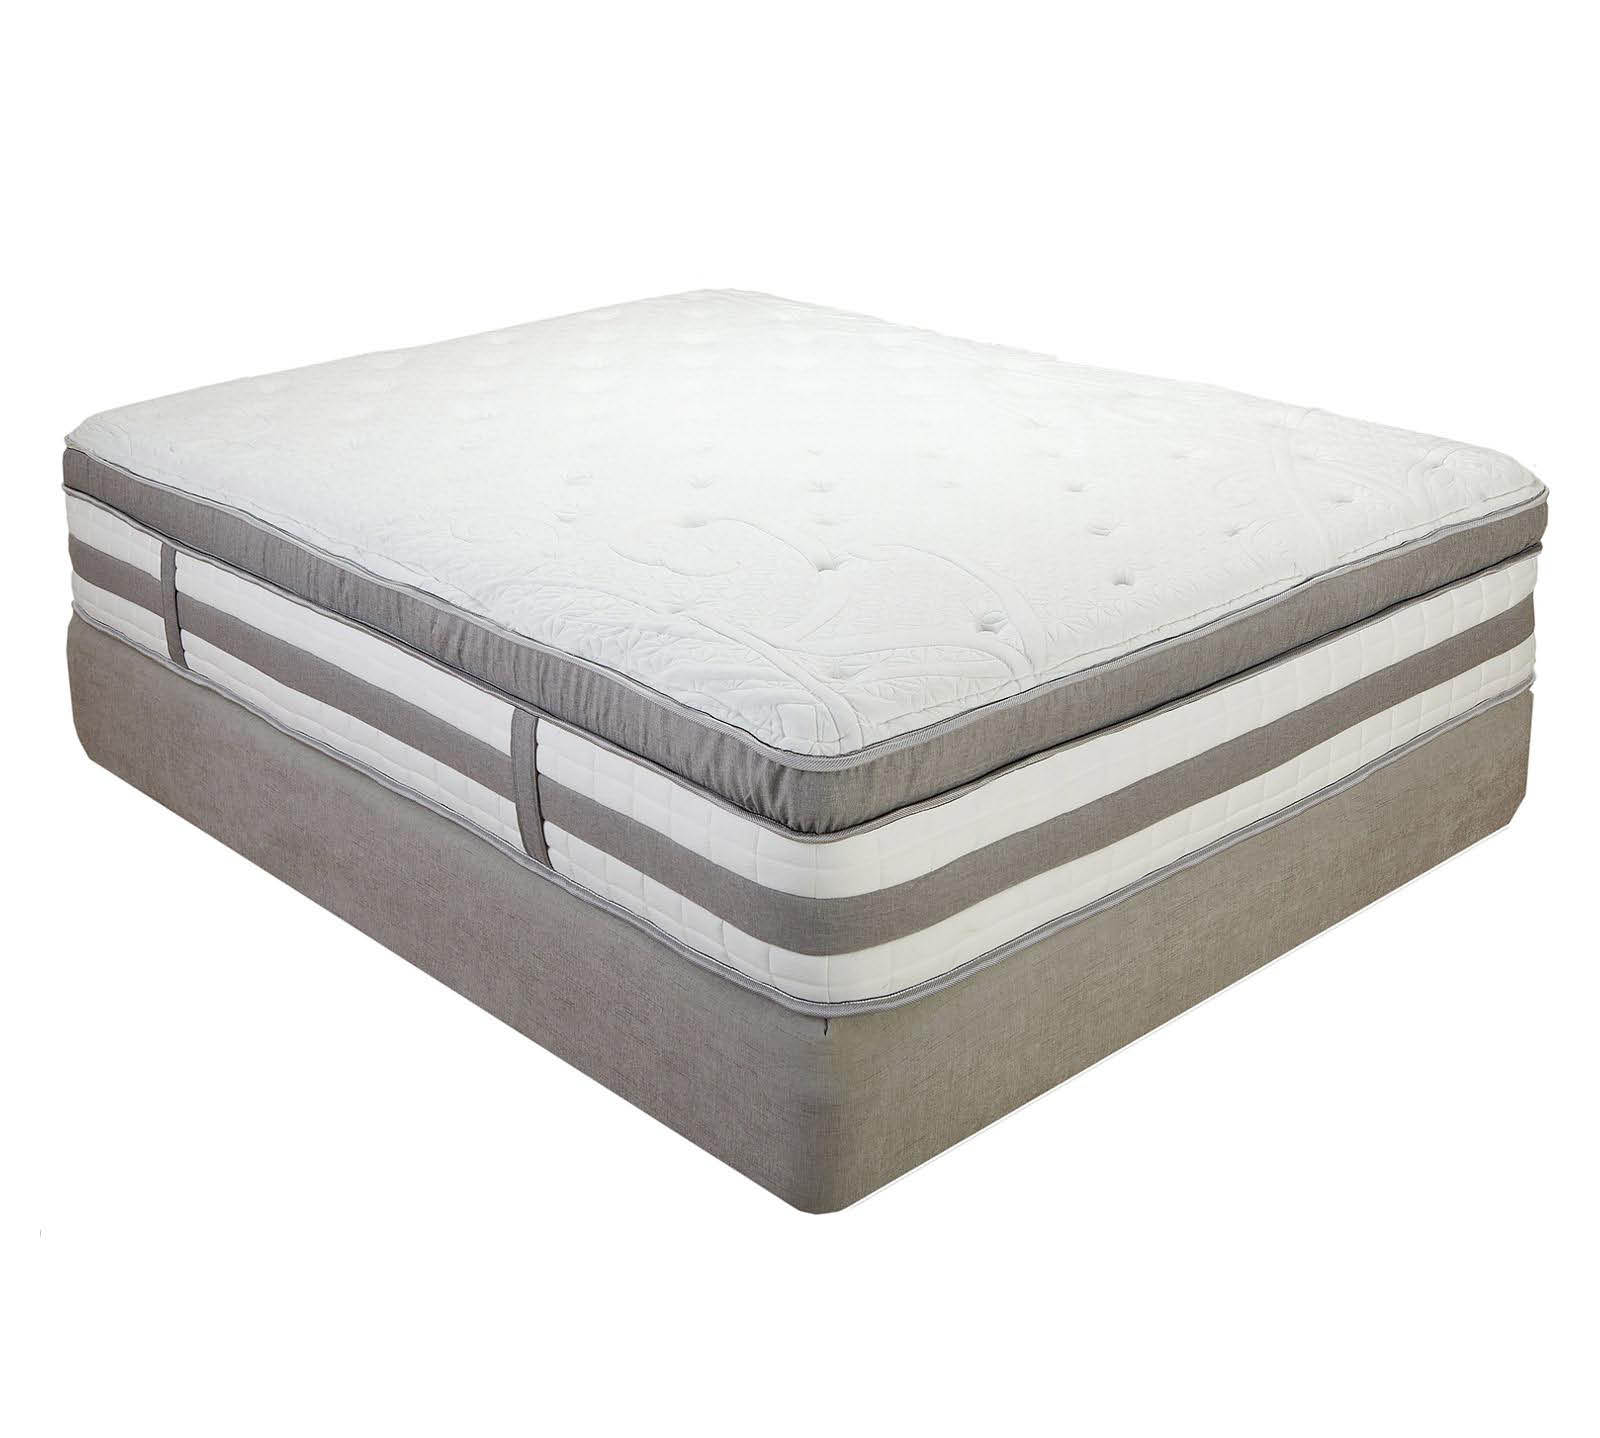 Quality brand name mattresses in a wide range of sizes and prices